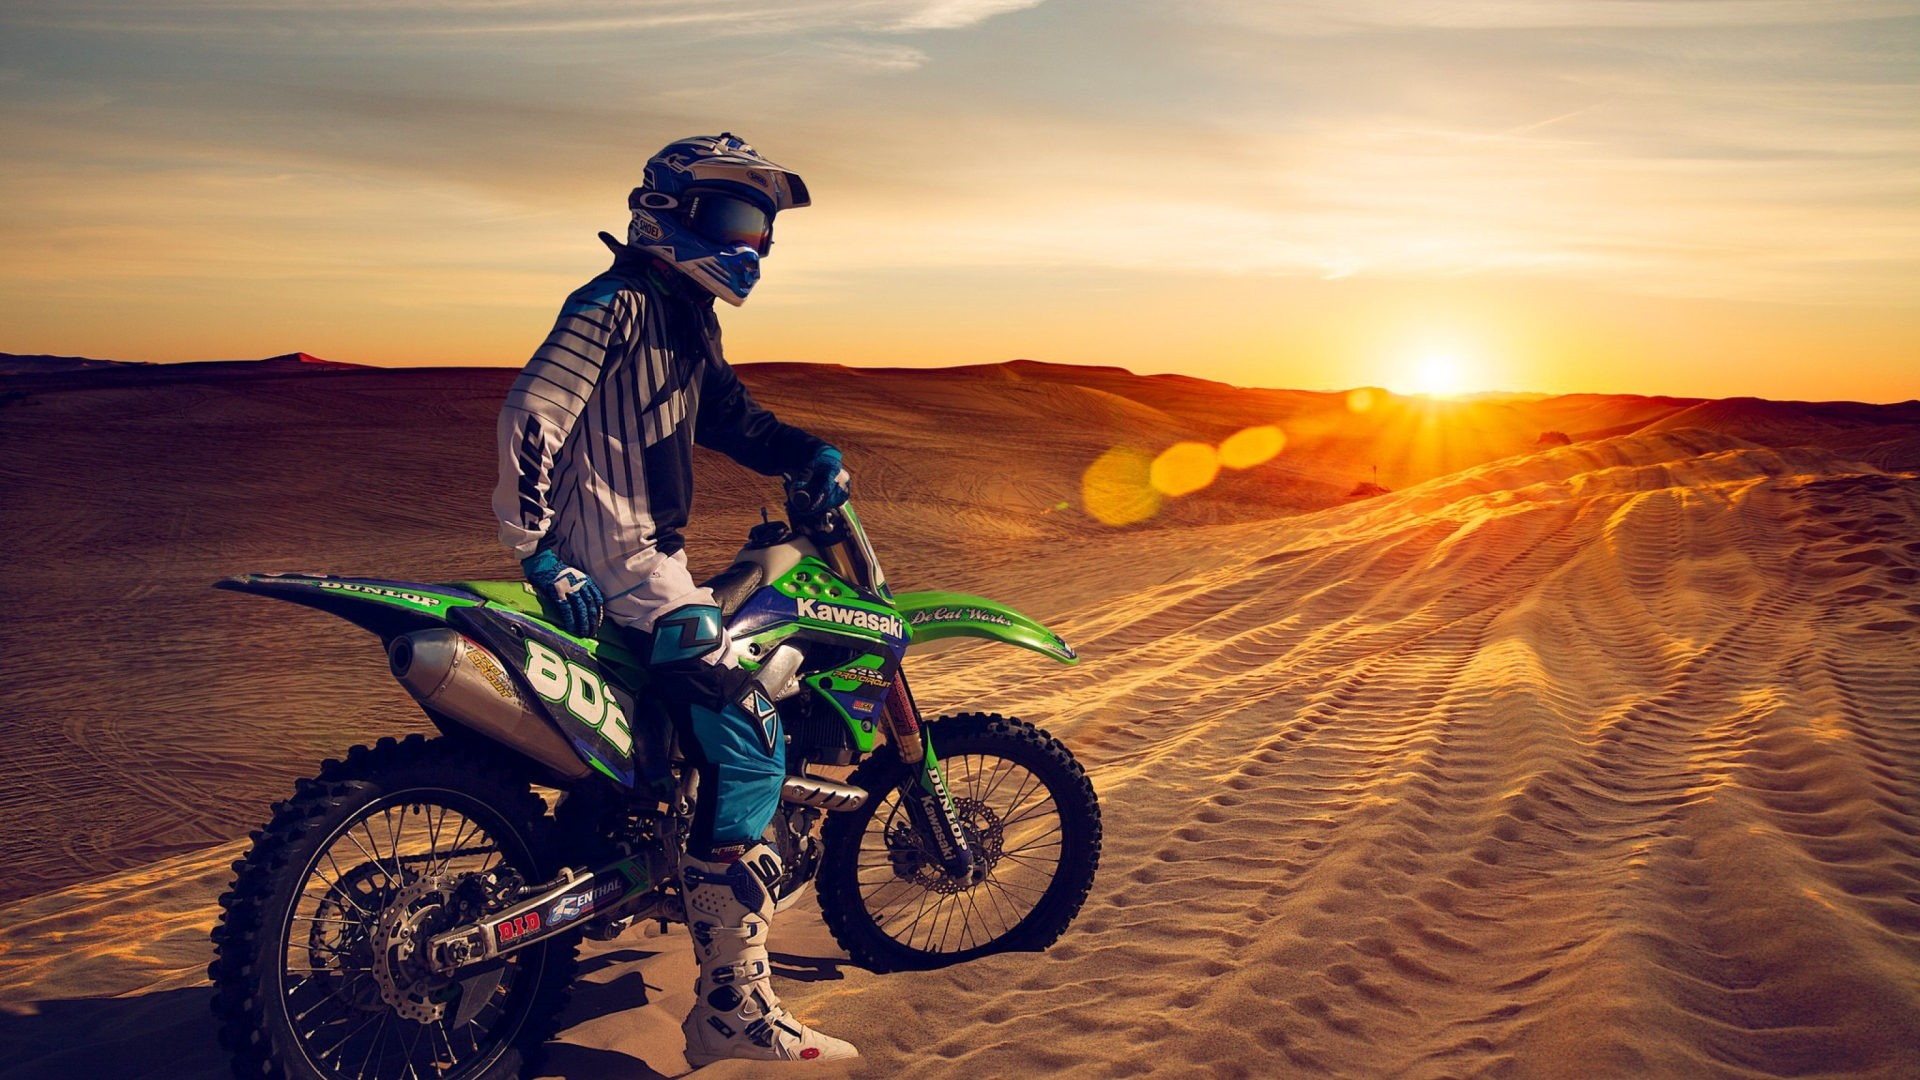 Dirt Bike wallpaper photo hd